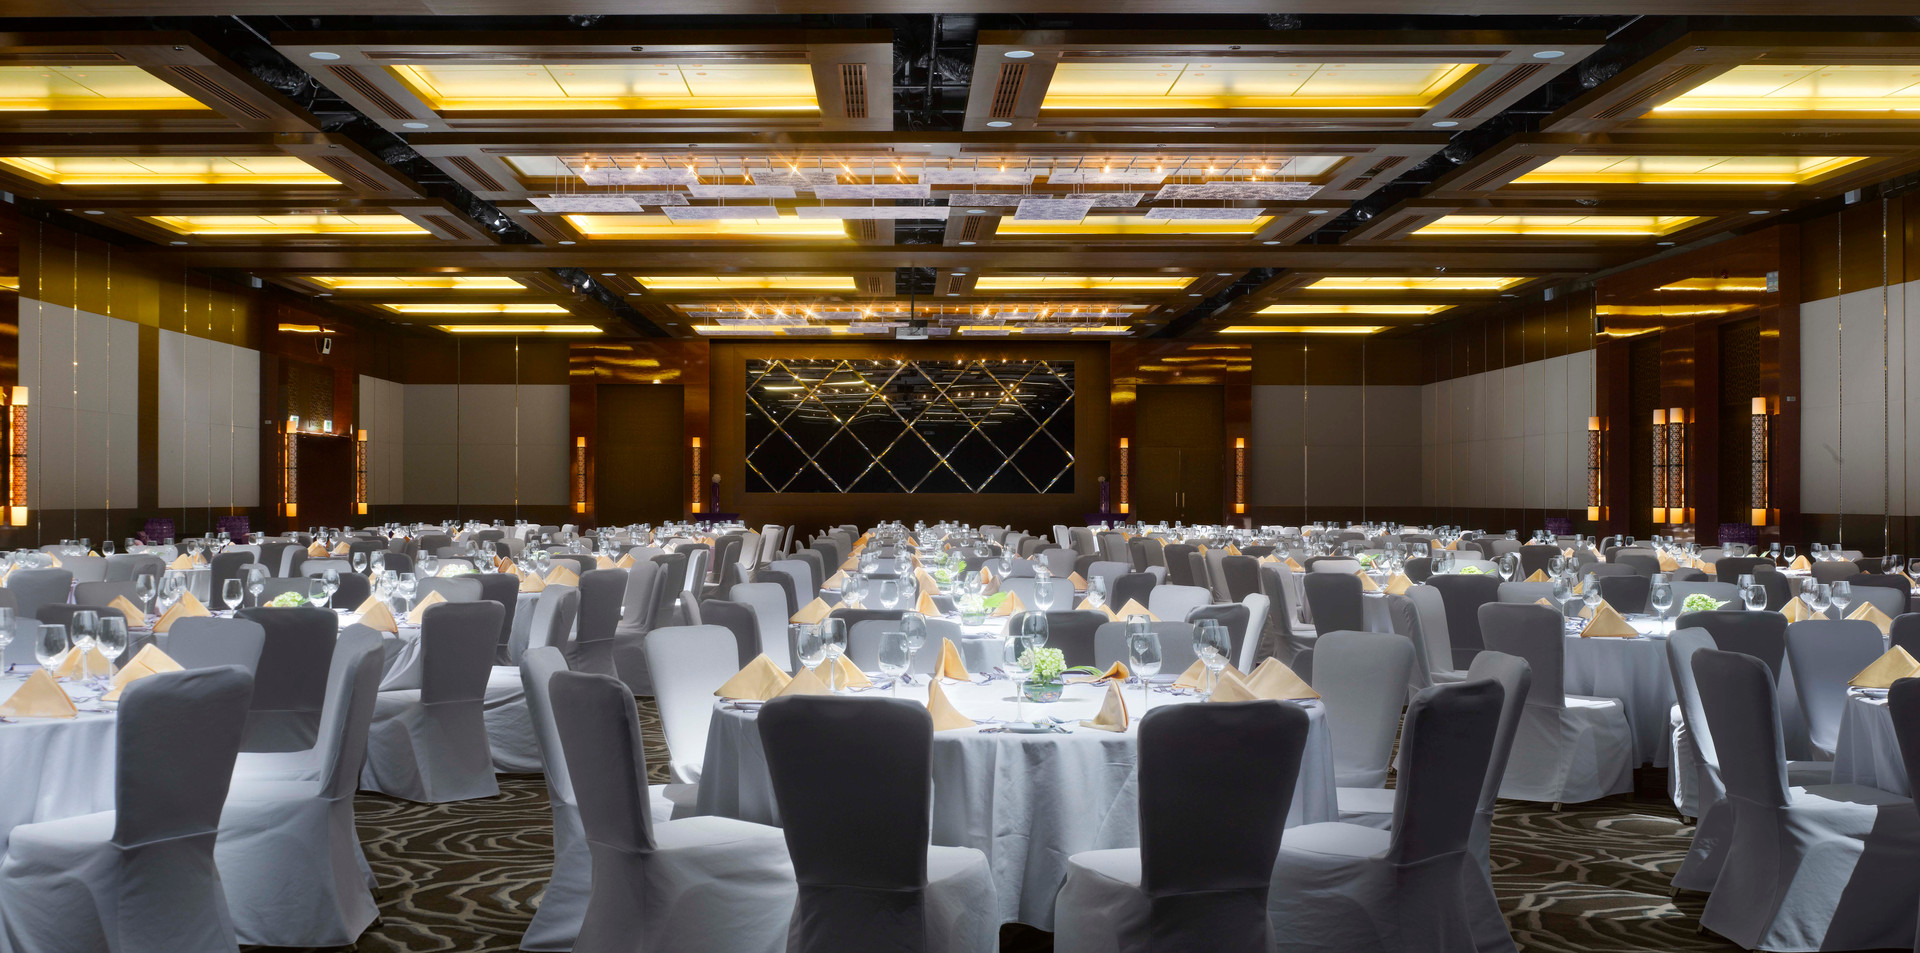 Events Center Al Baraha Ballroom Banquet Setup.jpg